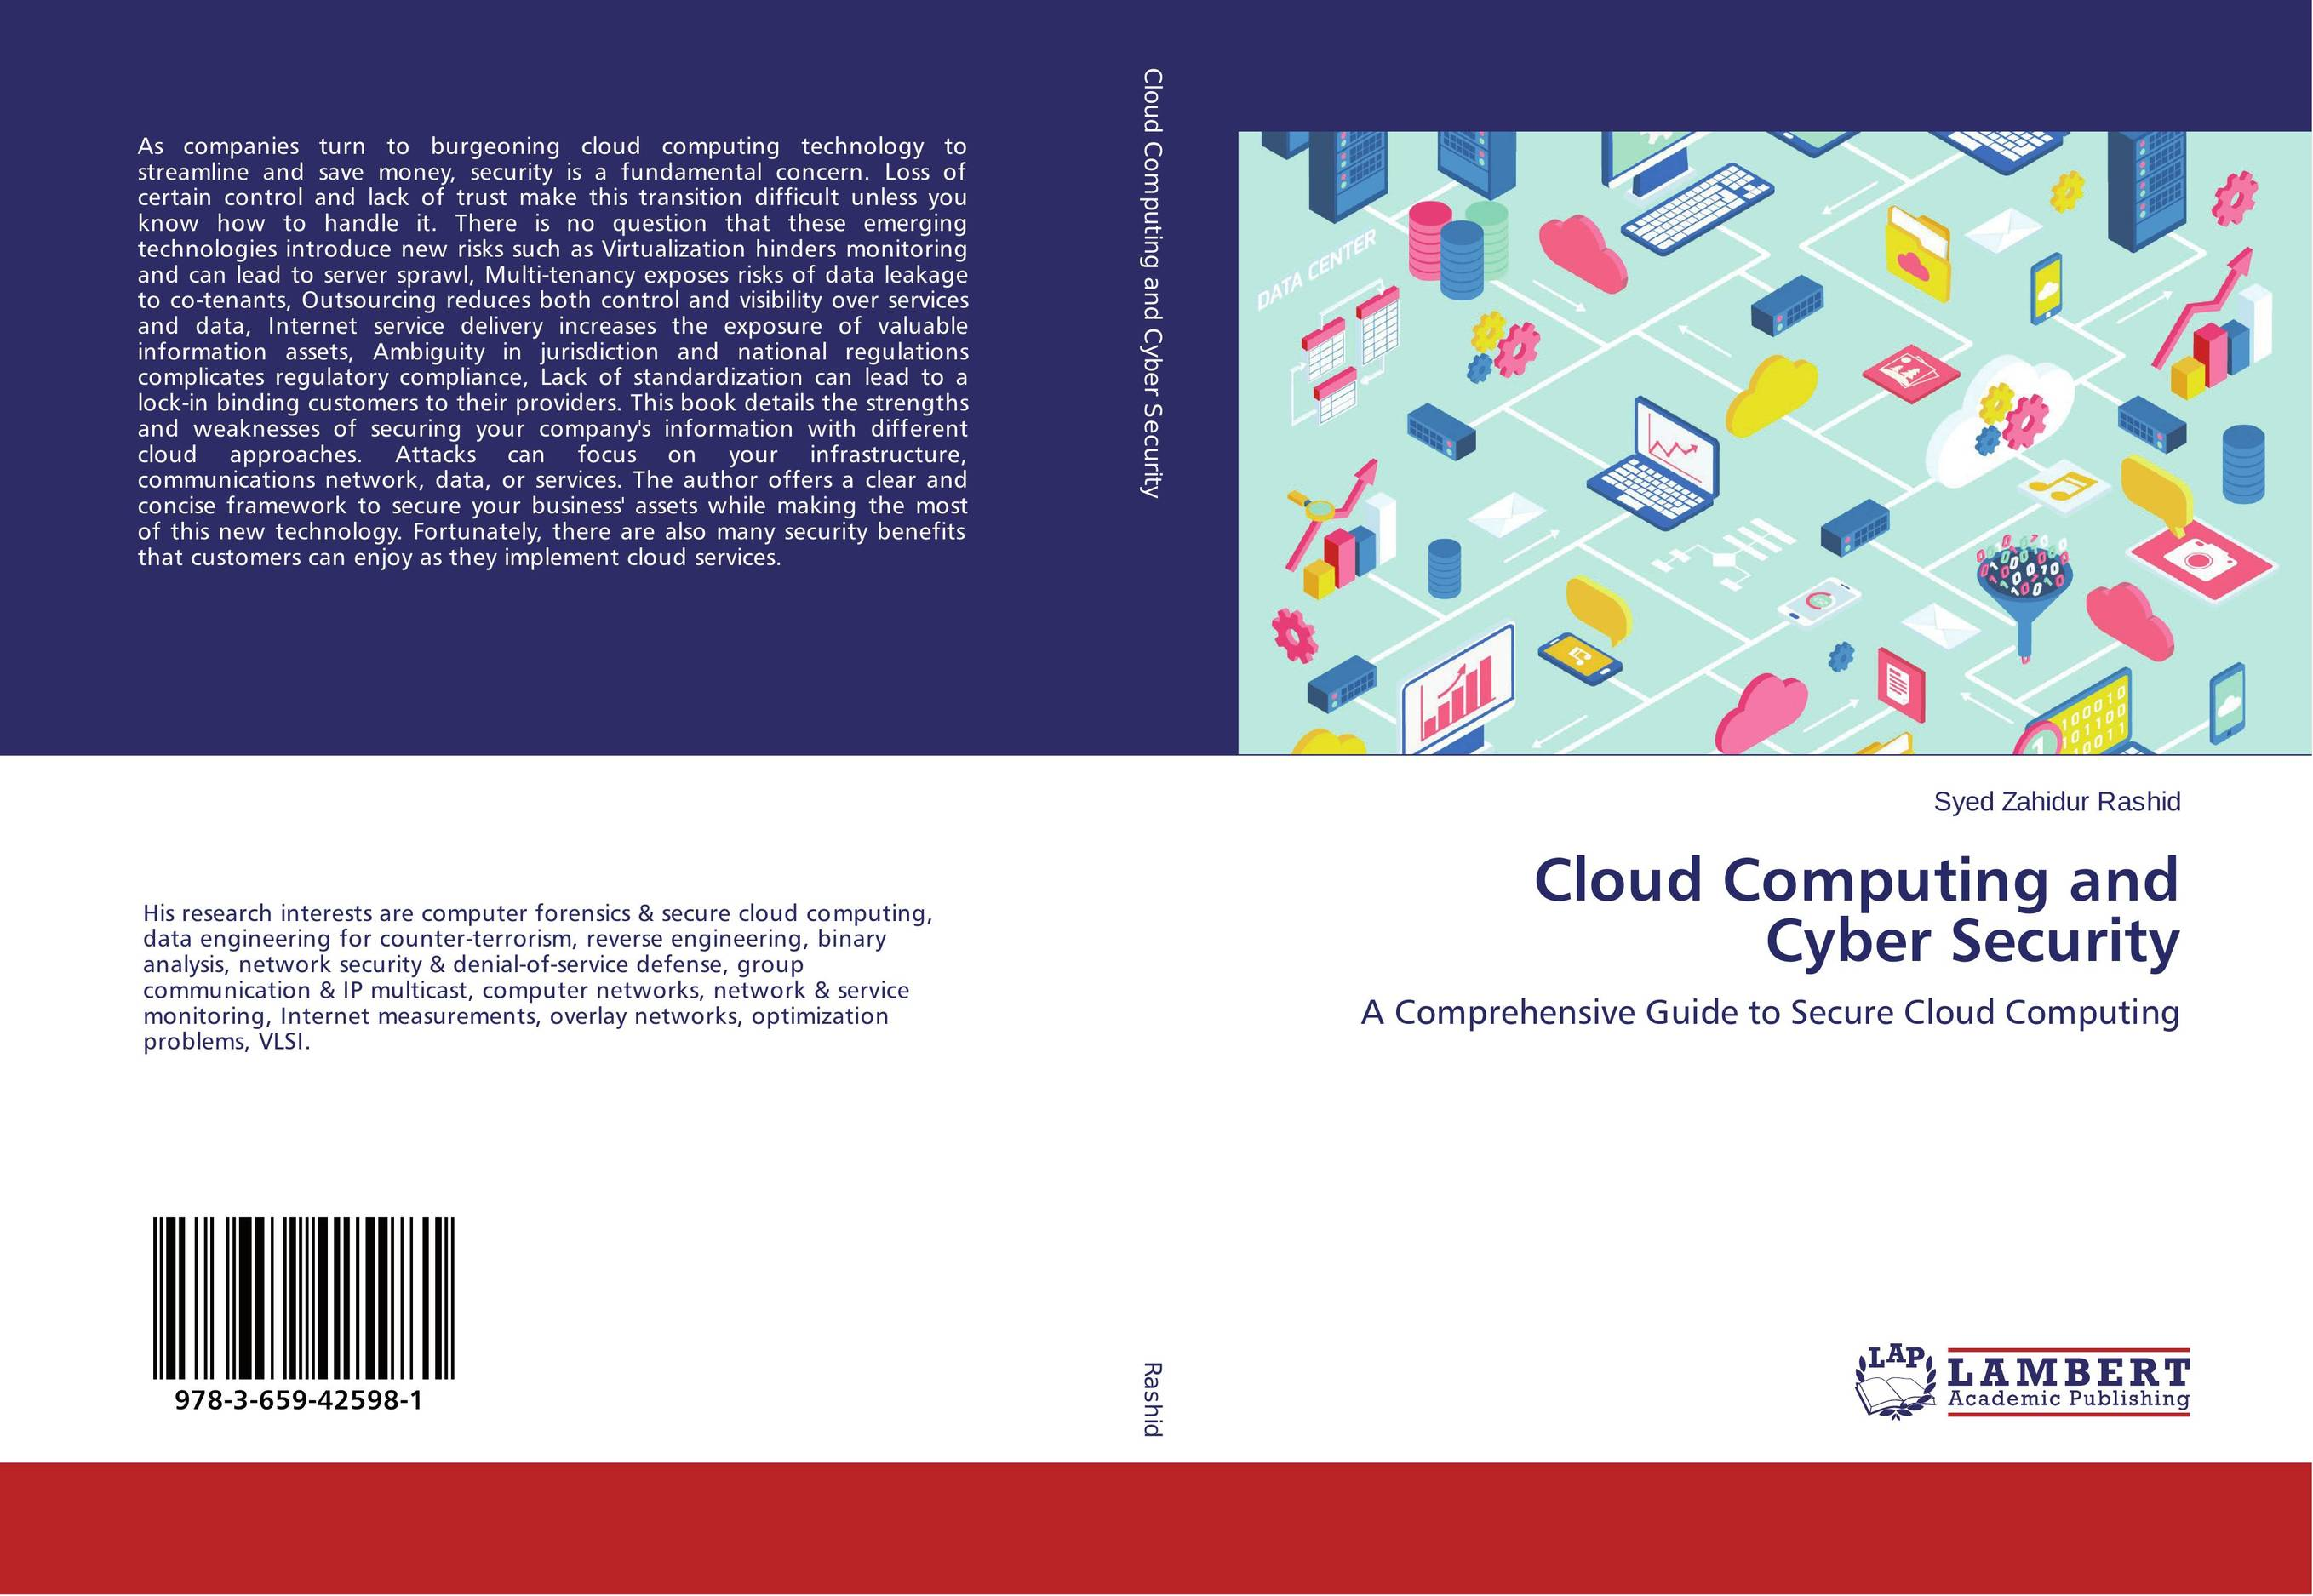 Cloud Computing and Cyber Security cloud computing